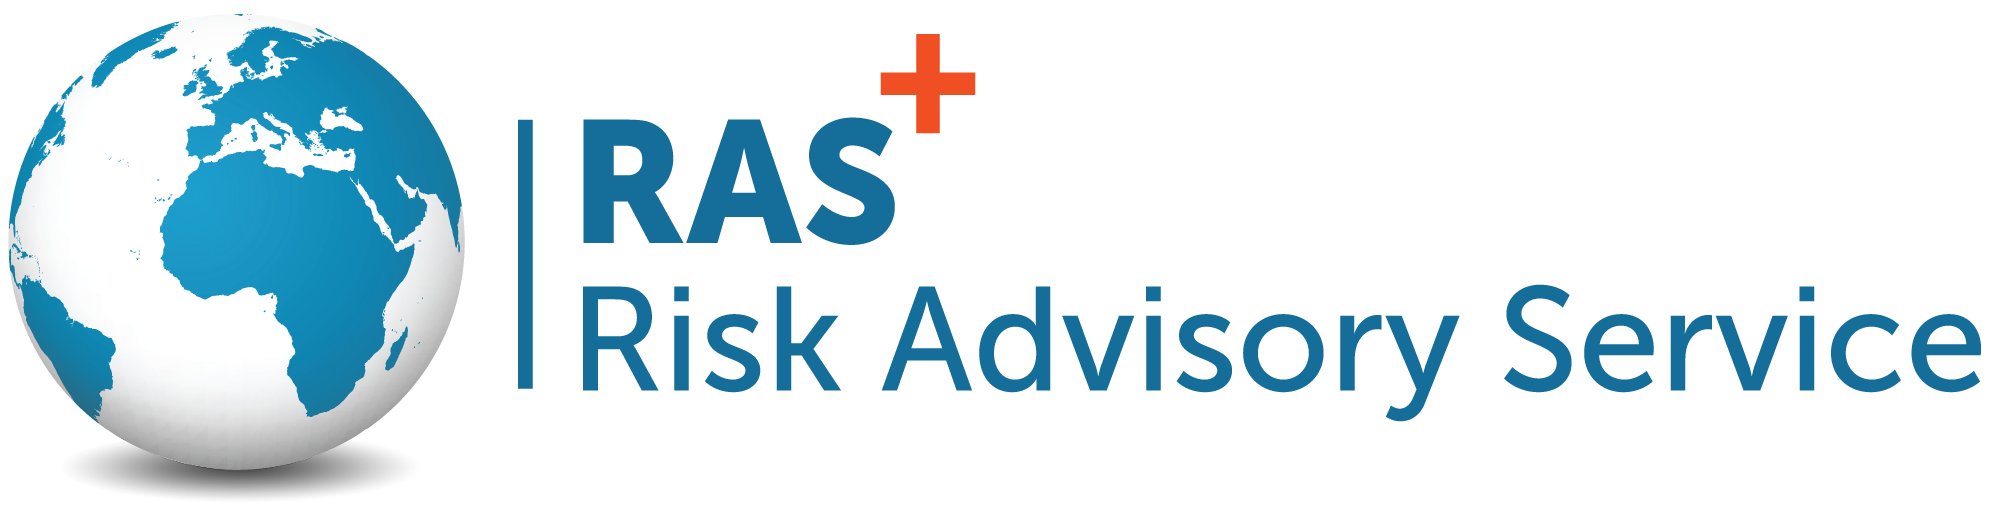 Image for Free Audit Tool - Risk Advisory Services